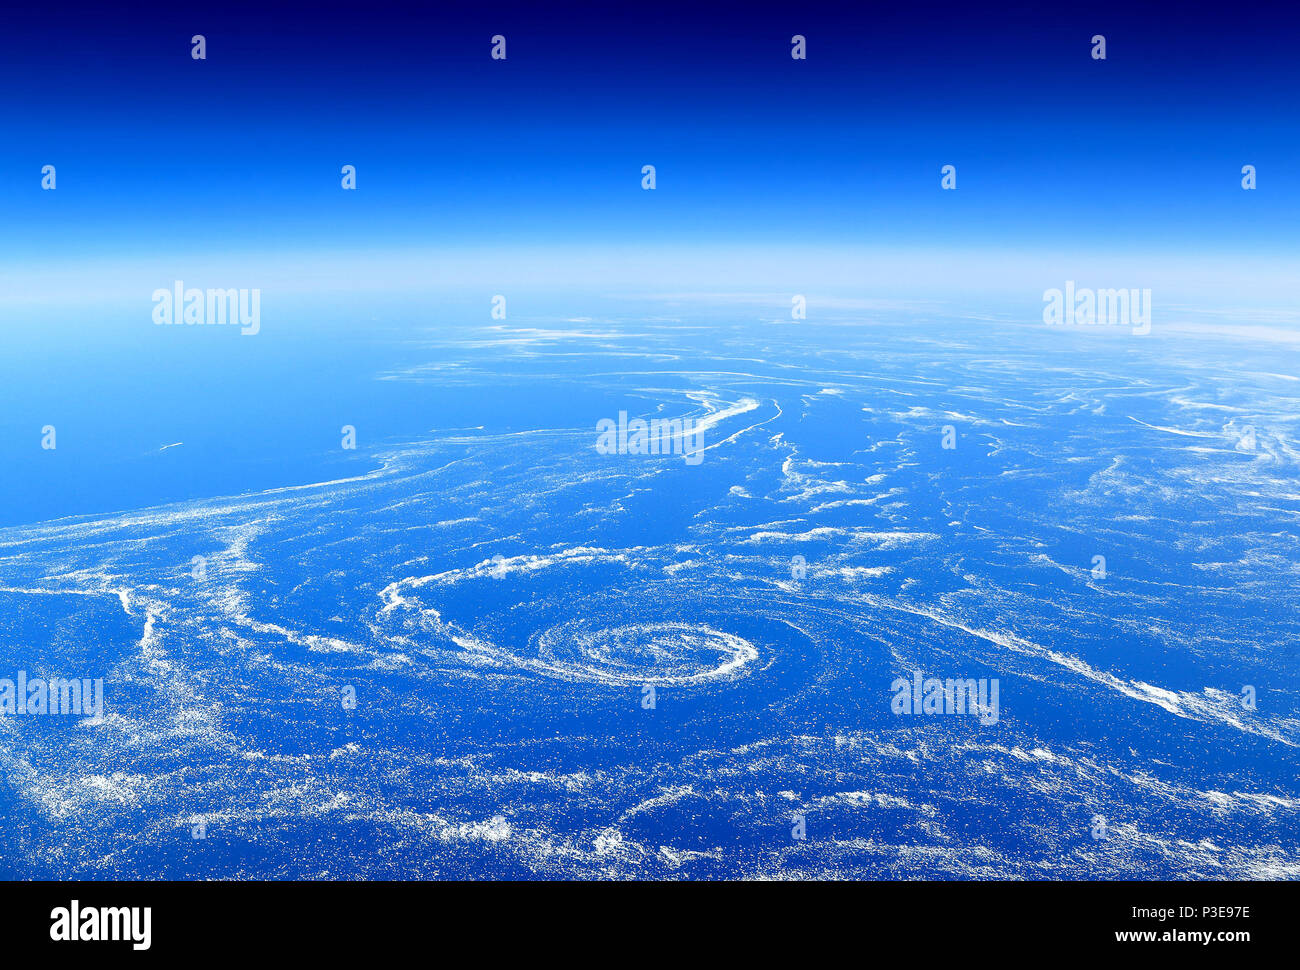 The Earth from above: Floating sea ice caught in marine currents off the eastern coast of Canada. - Stock Image